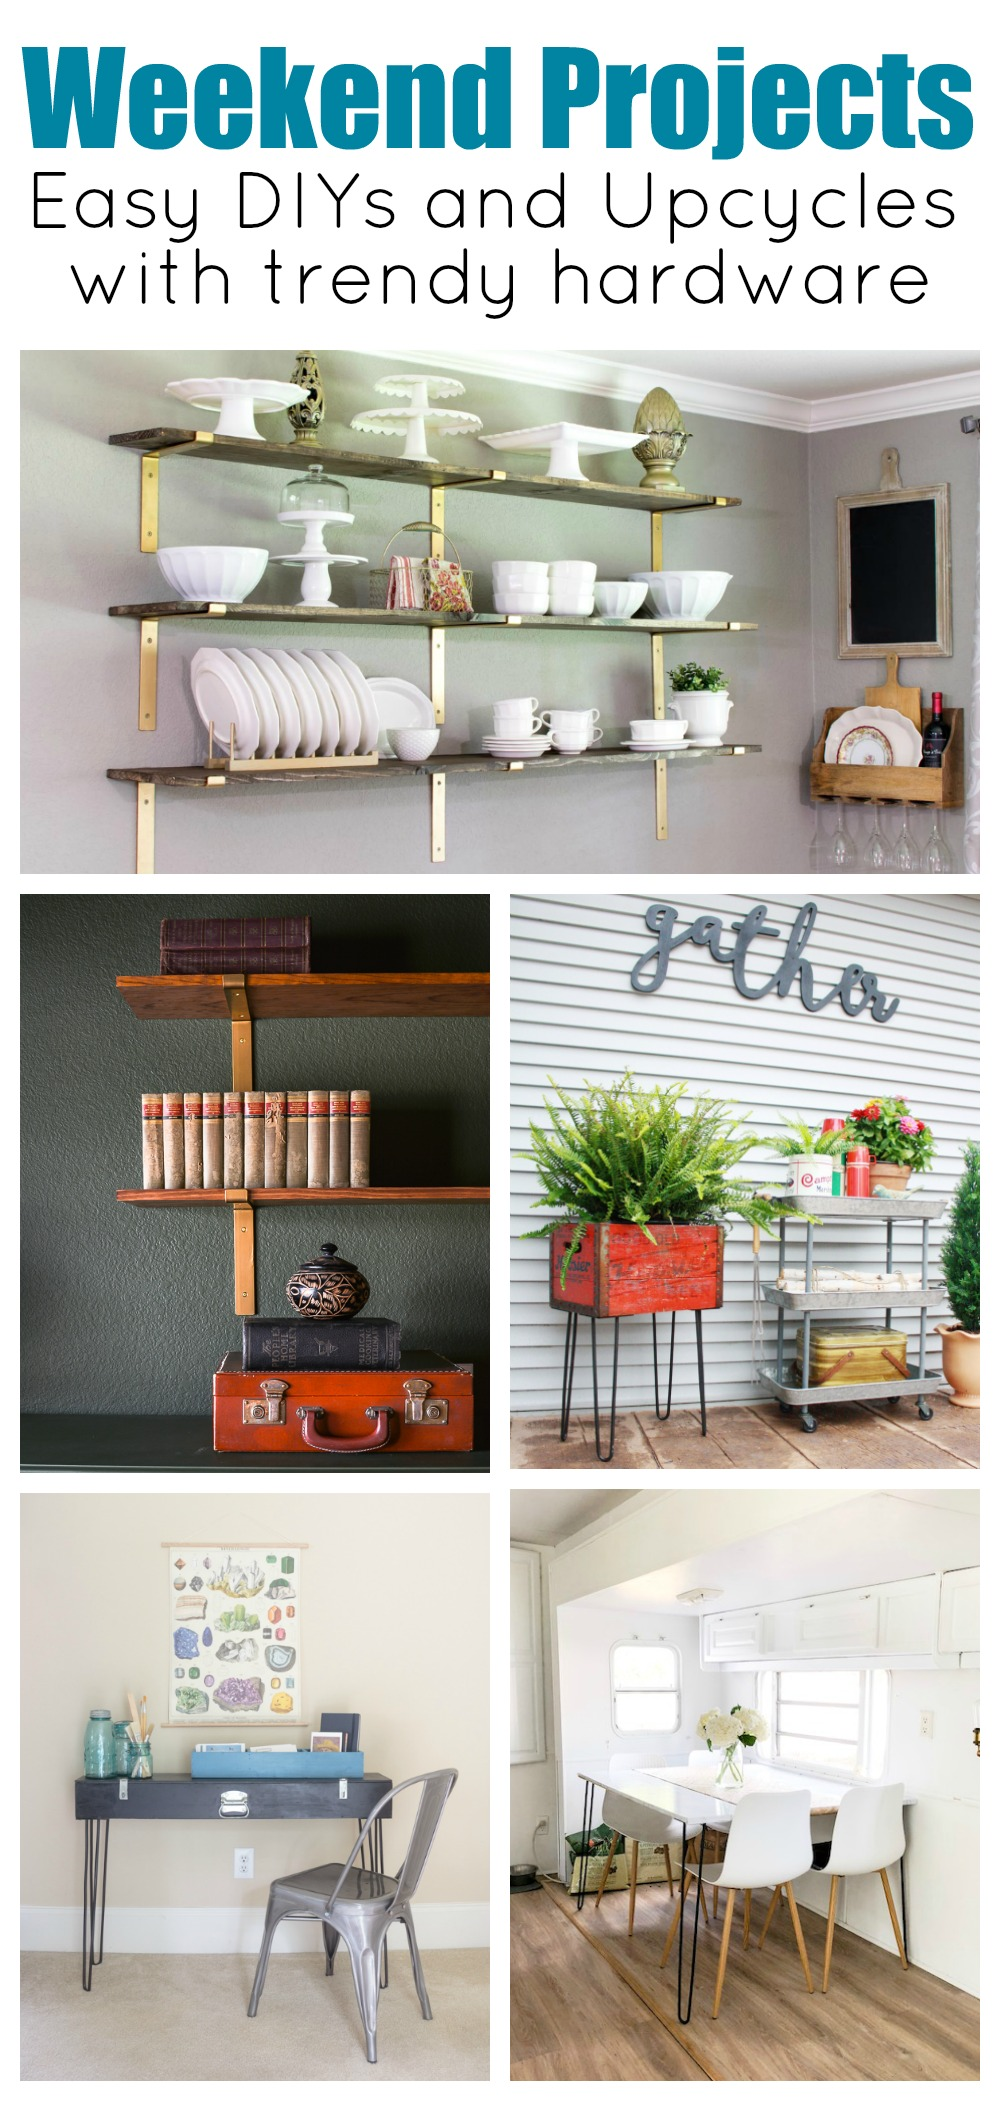 Easy weekend projects from Crates & Pallet. Try your hand add adding open shelves for gorgeous storage or make a one of a kind table with hairpin legs. Here are five ideas to get you started. #hairpinlegs #openshelving #goldshelfbrackets #weekendwrrior #weekendproject #bohochic#moodydecor